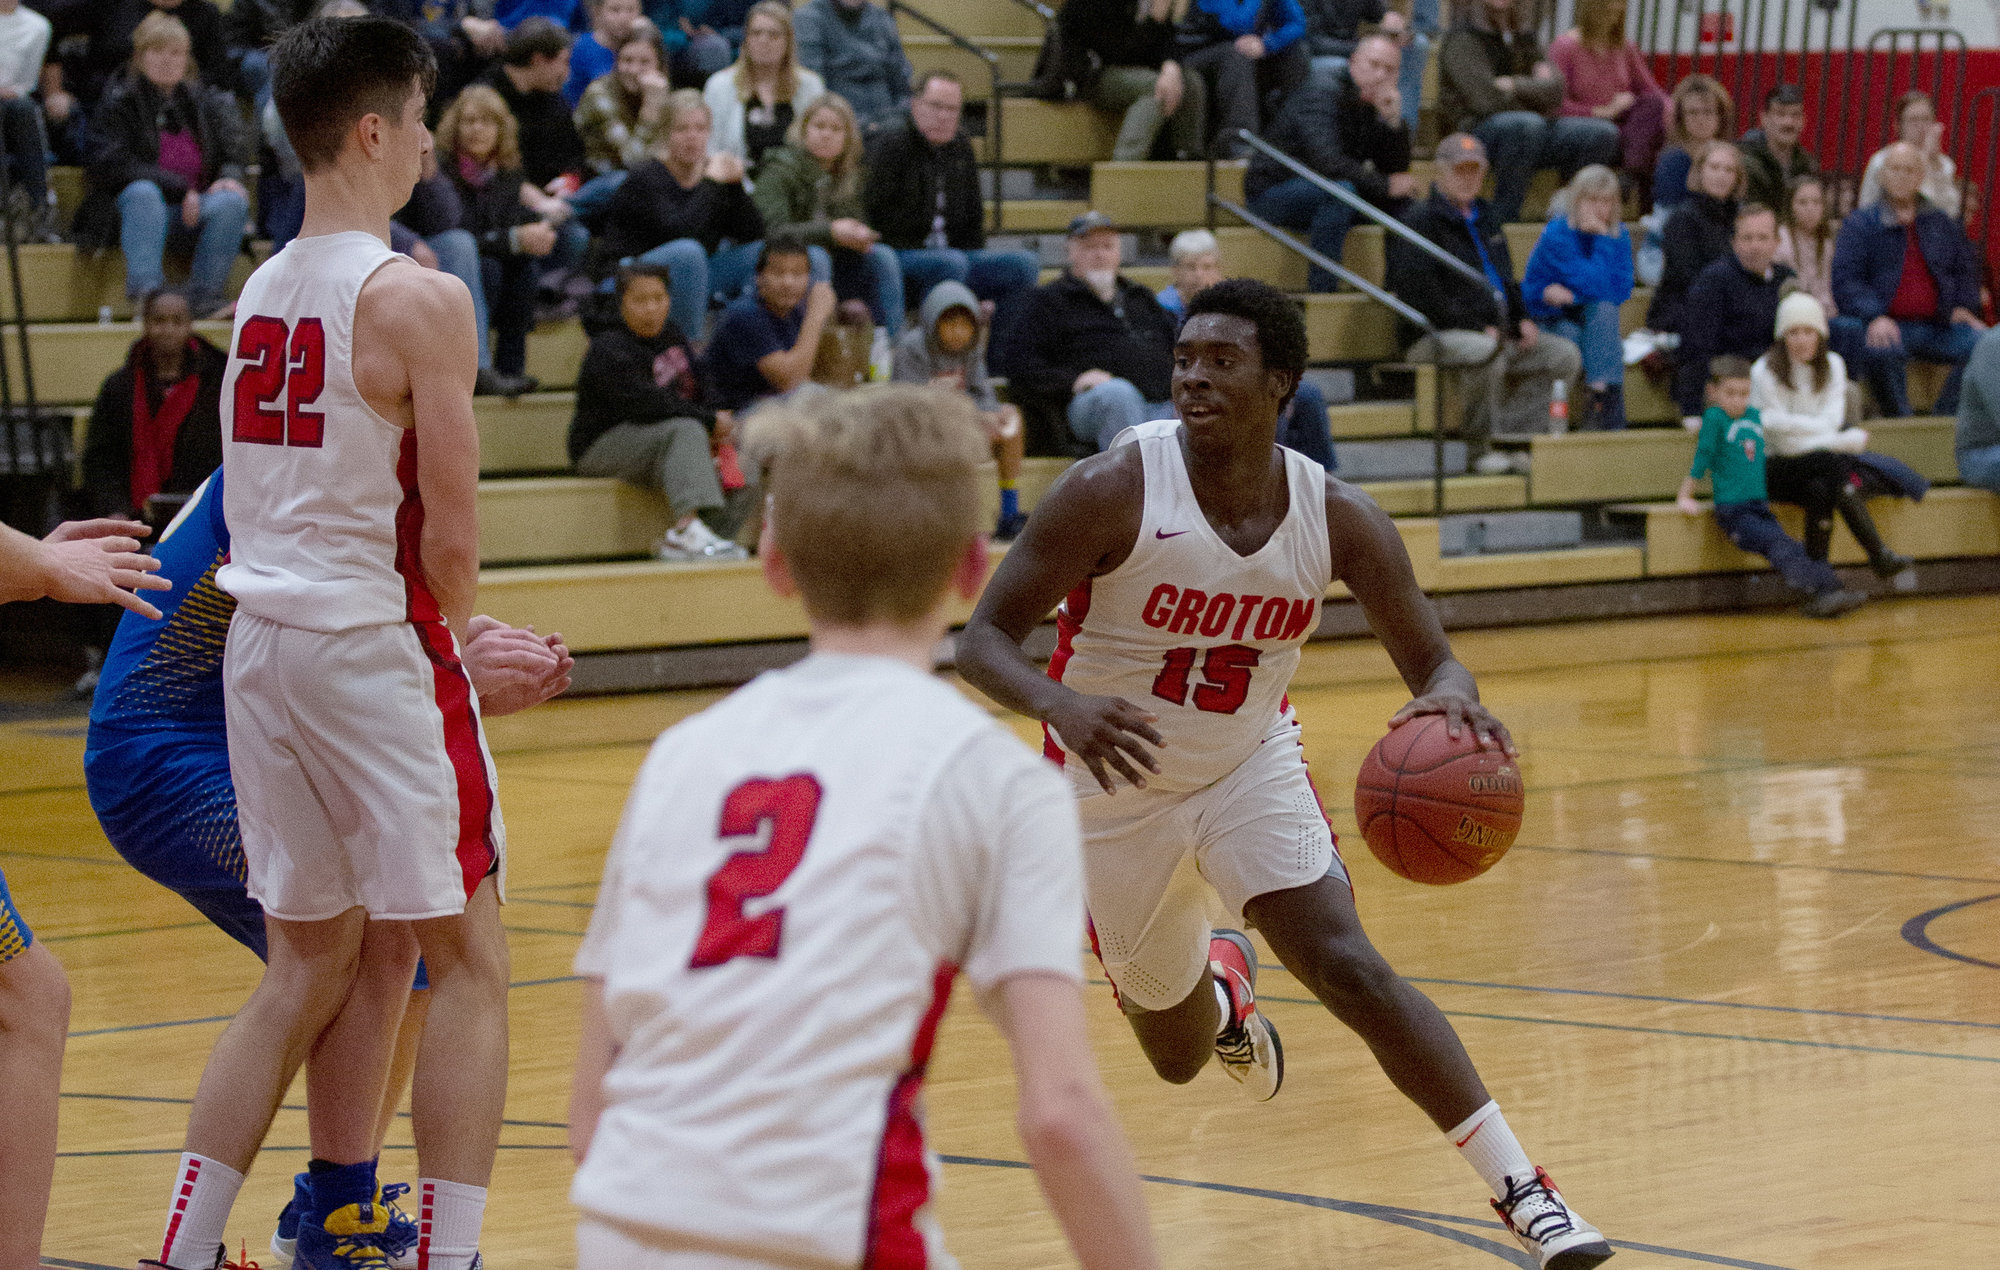 Omari Riley-Israel dribbles around a screen set by Kade Eldred (no. 22) with Mason Slade (2) in the foreground.